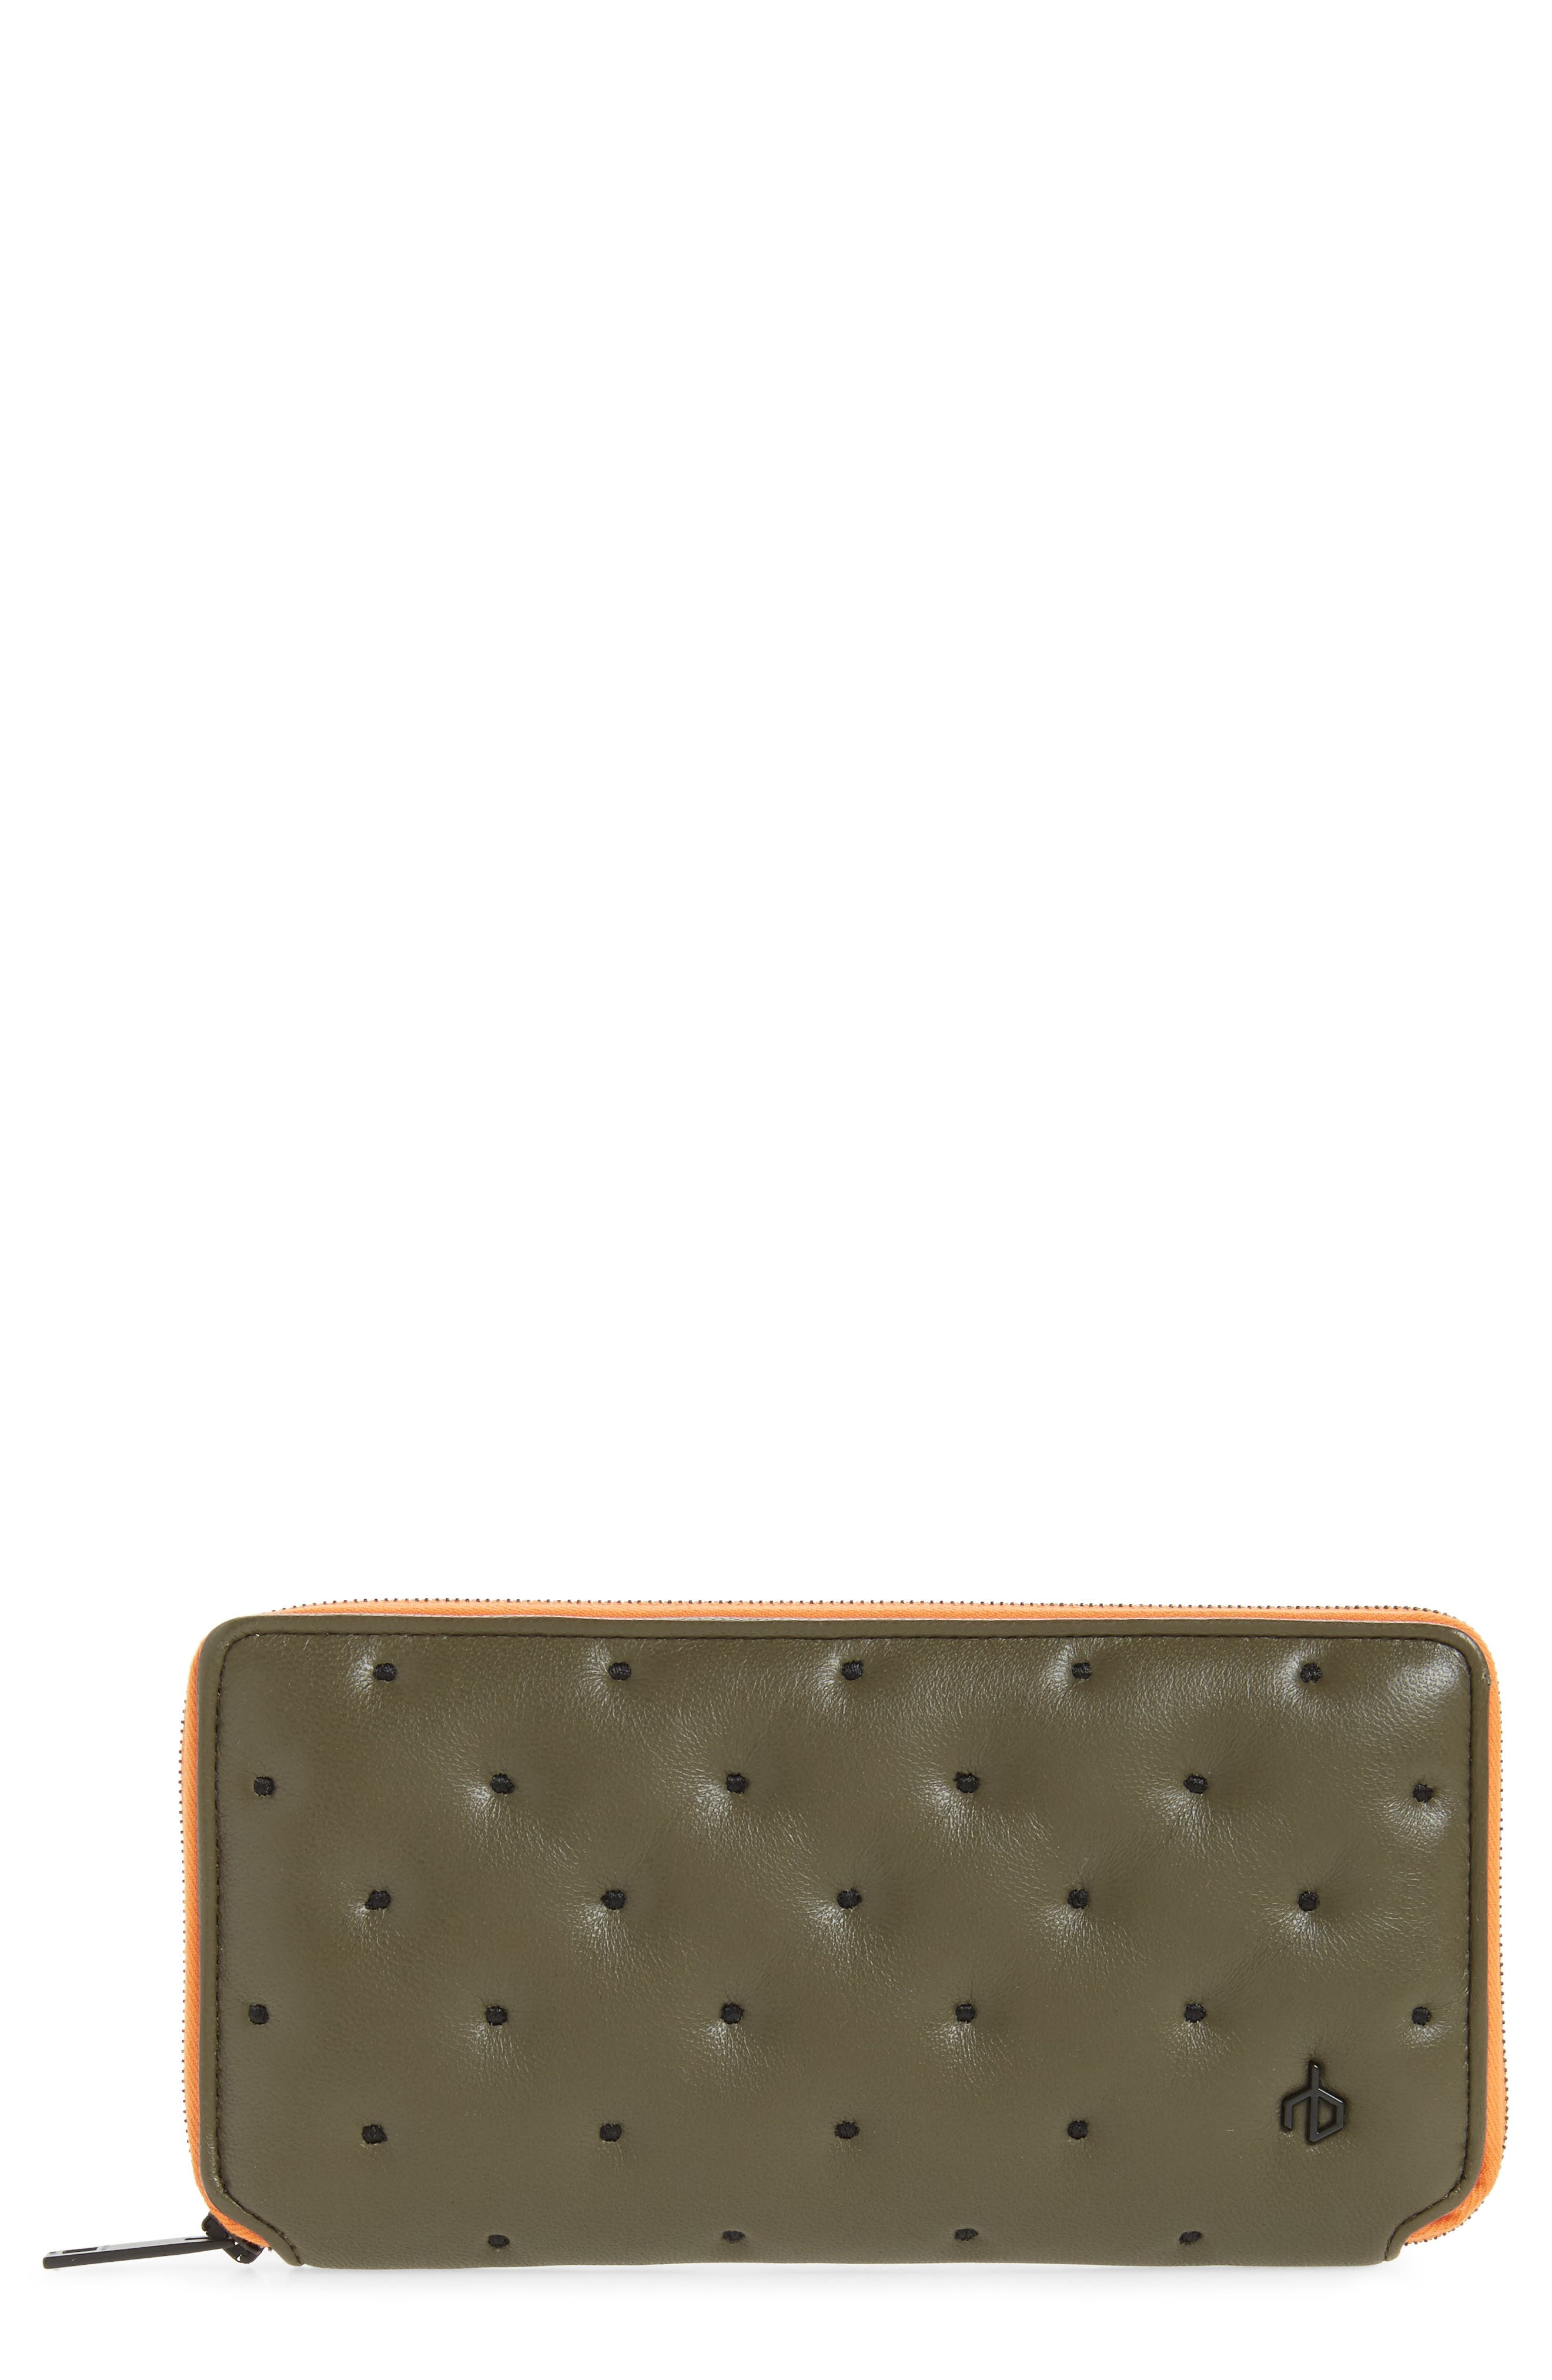 Dot Dash Quilted Leather Zip Around Wallet,                         Main,                         color, Green Dot Dash Quilt